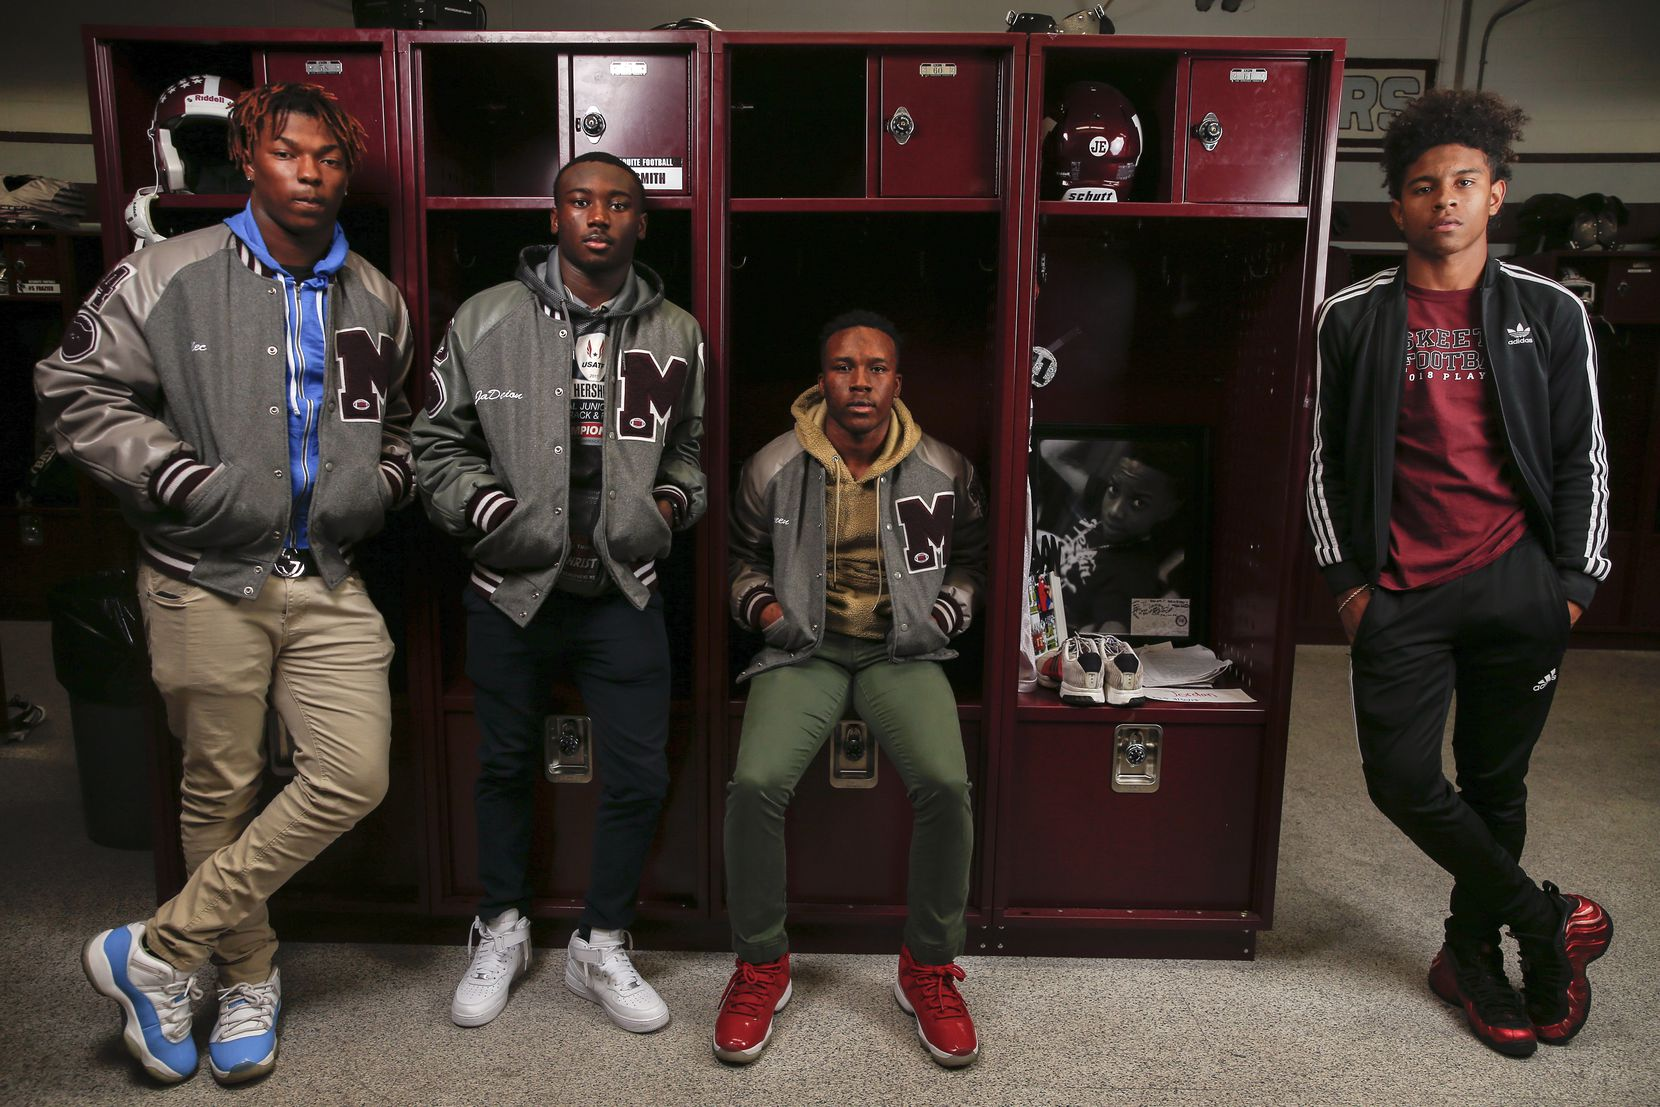 Senior Mesquite football players Alec Rice, left, Ja'Darion Smith, Gary Green, and De'Wayne Adams pose for a photograph next to the locker of their former classmate and Mesquite football player Jordan Edwards, on Thursday, Oct. 31, 2019 in Mesquite, Texas. Edwards would have been a senior member of the Mesquite football team this year. Instead, he was murdered by a Balch Springs police officer two years ago. Students have made the locker a permanent reminder Edwards, leaving behind notes, momentos, and decorating for homecoming. (Ryan Michalesko/The Dallas Morning News)